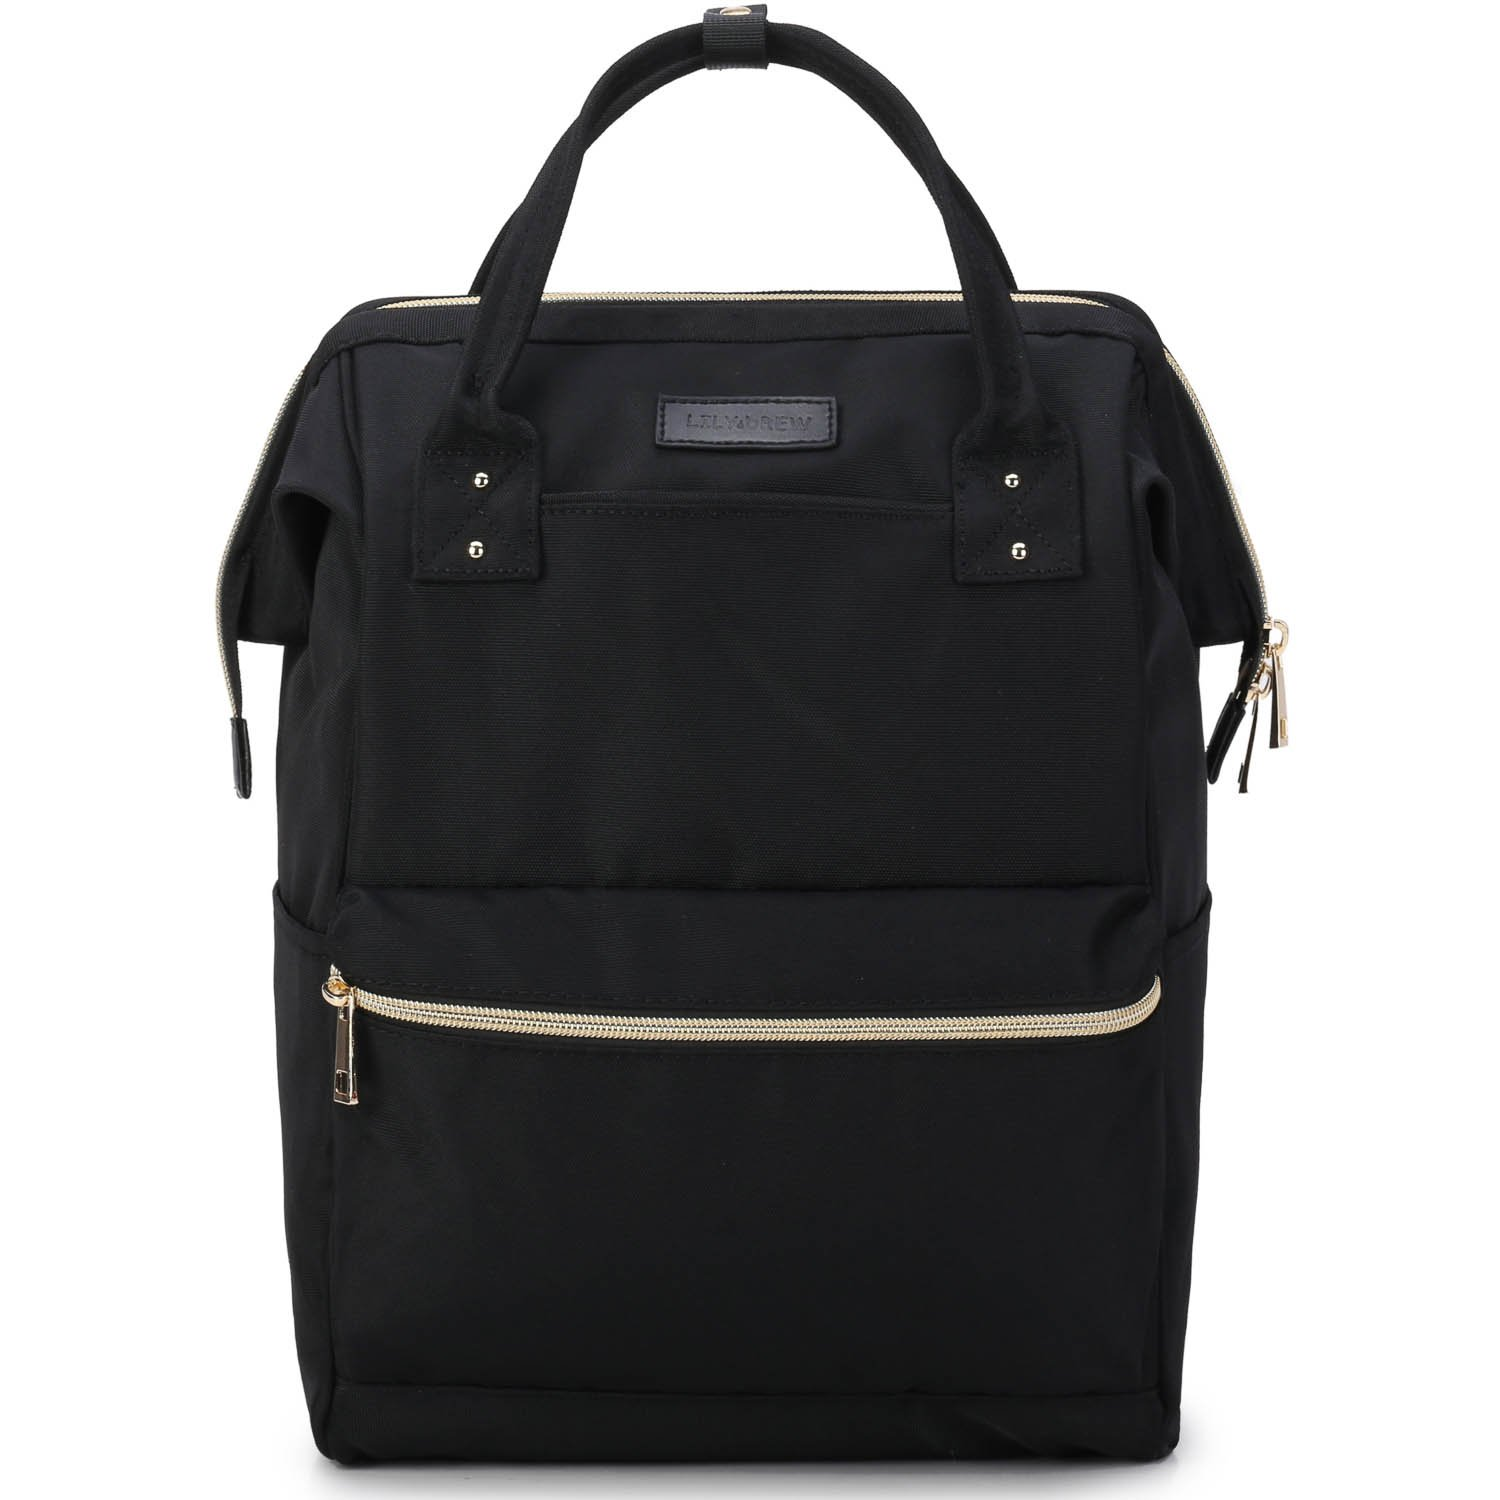 Lily & Drew Casual Travel Daypack School Backpack for Men Women and Laptop Computer, with Doctor Style Top Opening (V4 Black Medium)